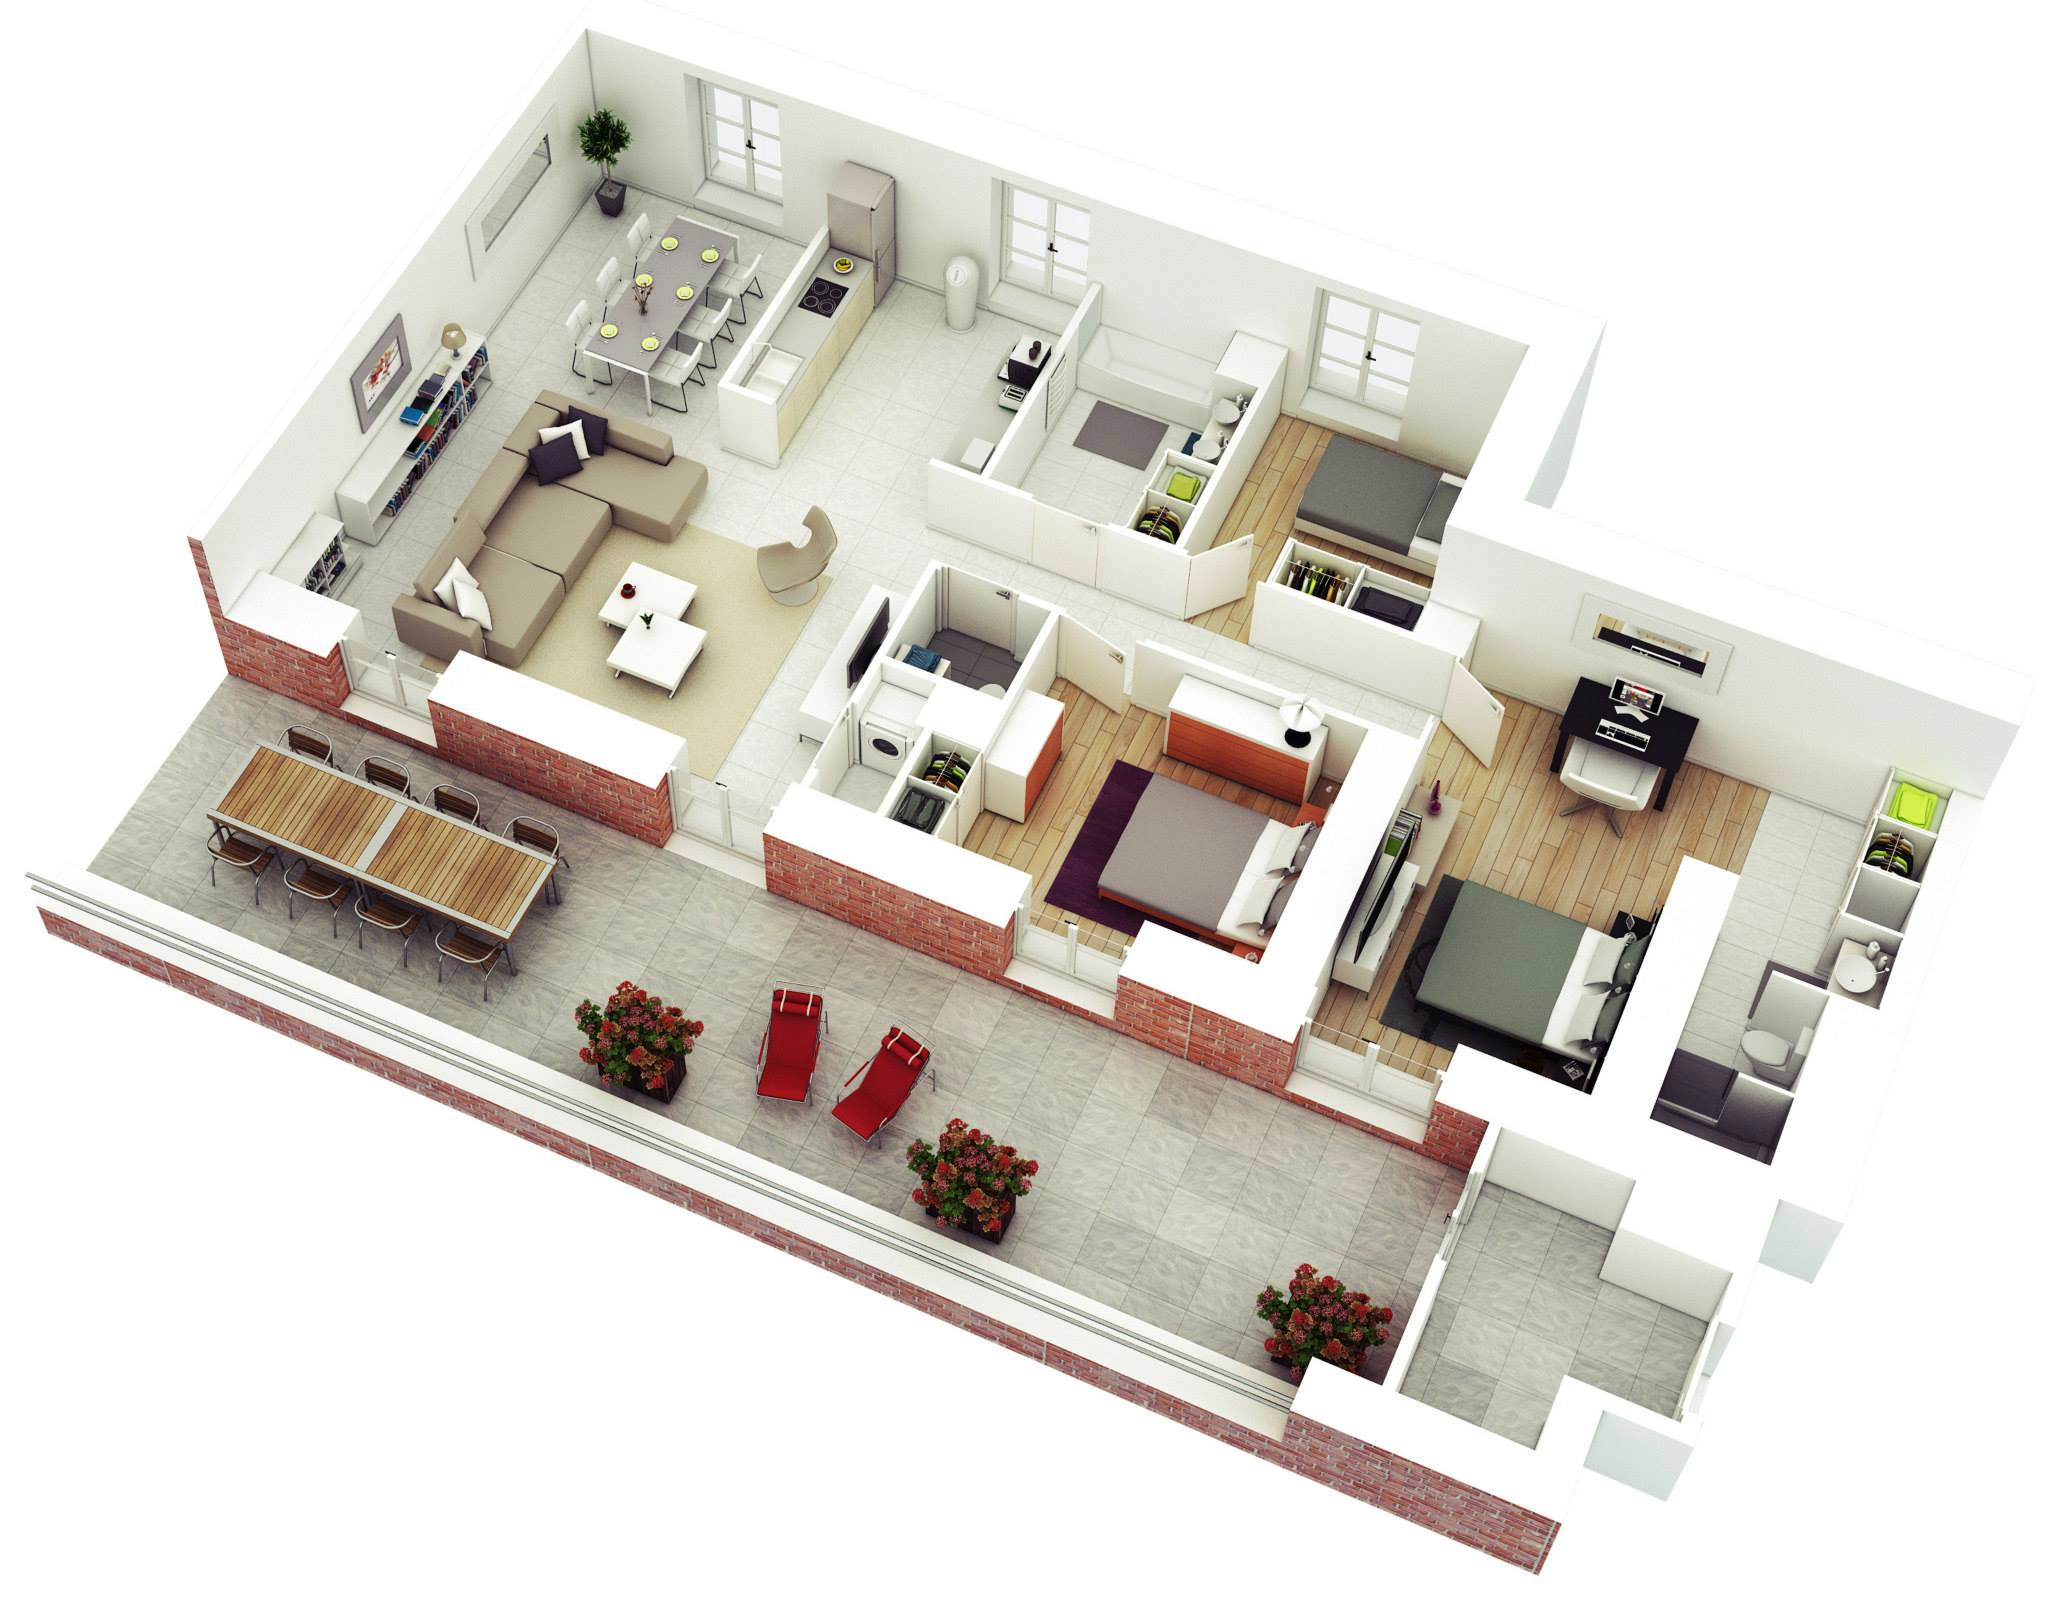 25 more 3 bedroom 3d floor plans - 3d Design Bedroom